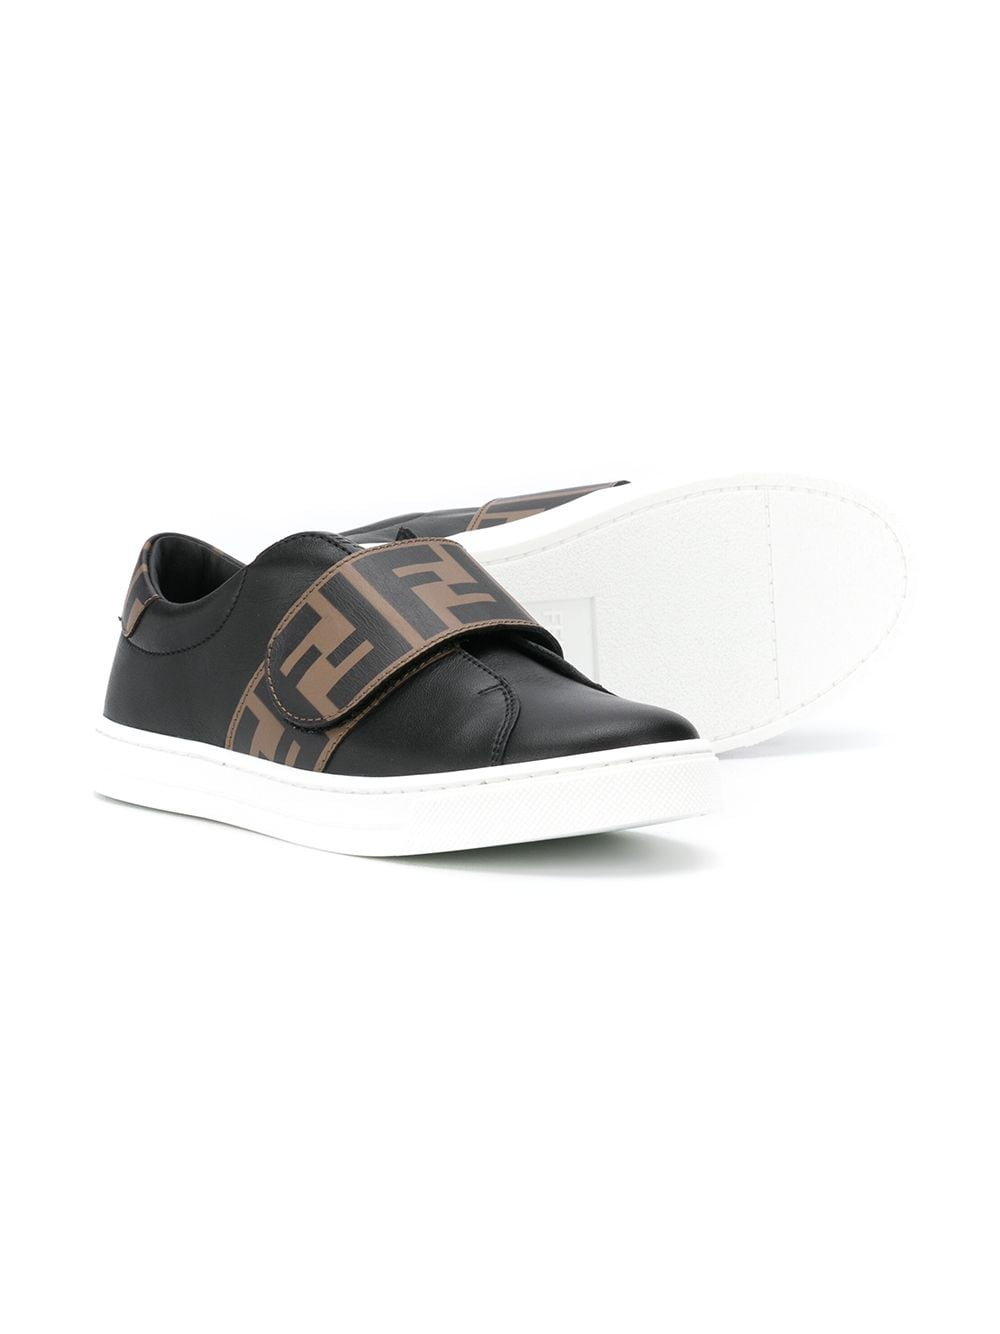 FENDI KIDS FF Logo Strap Sneakers Black - Maison De Fashion